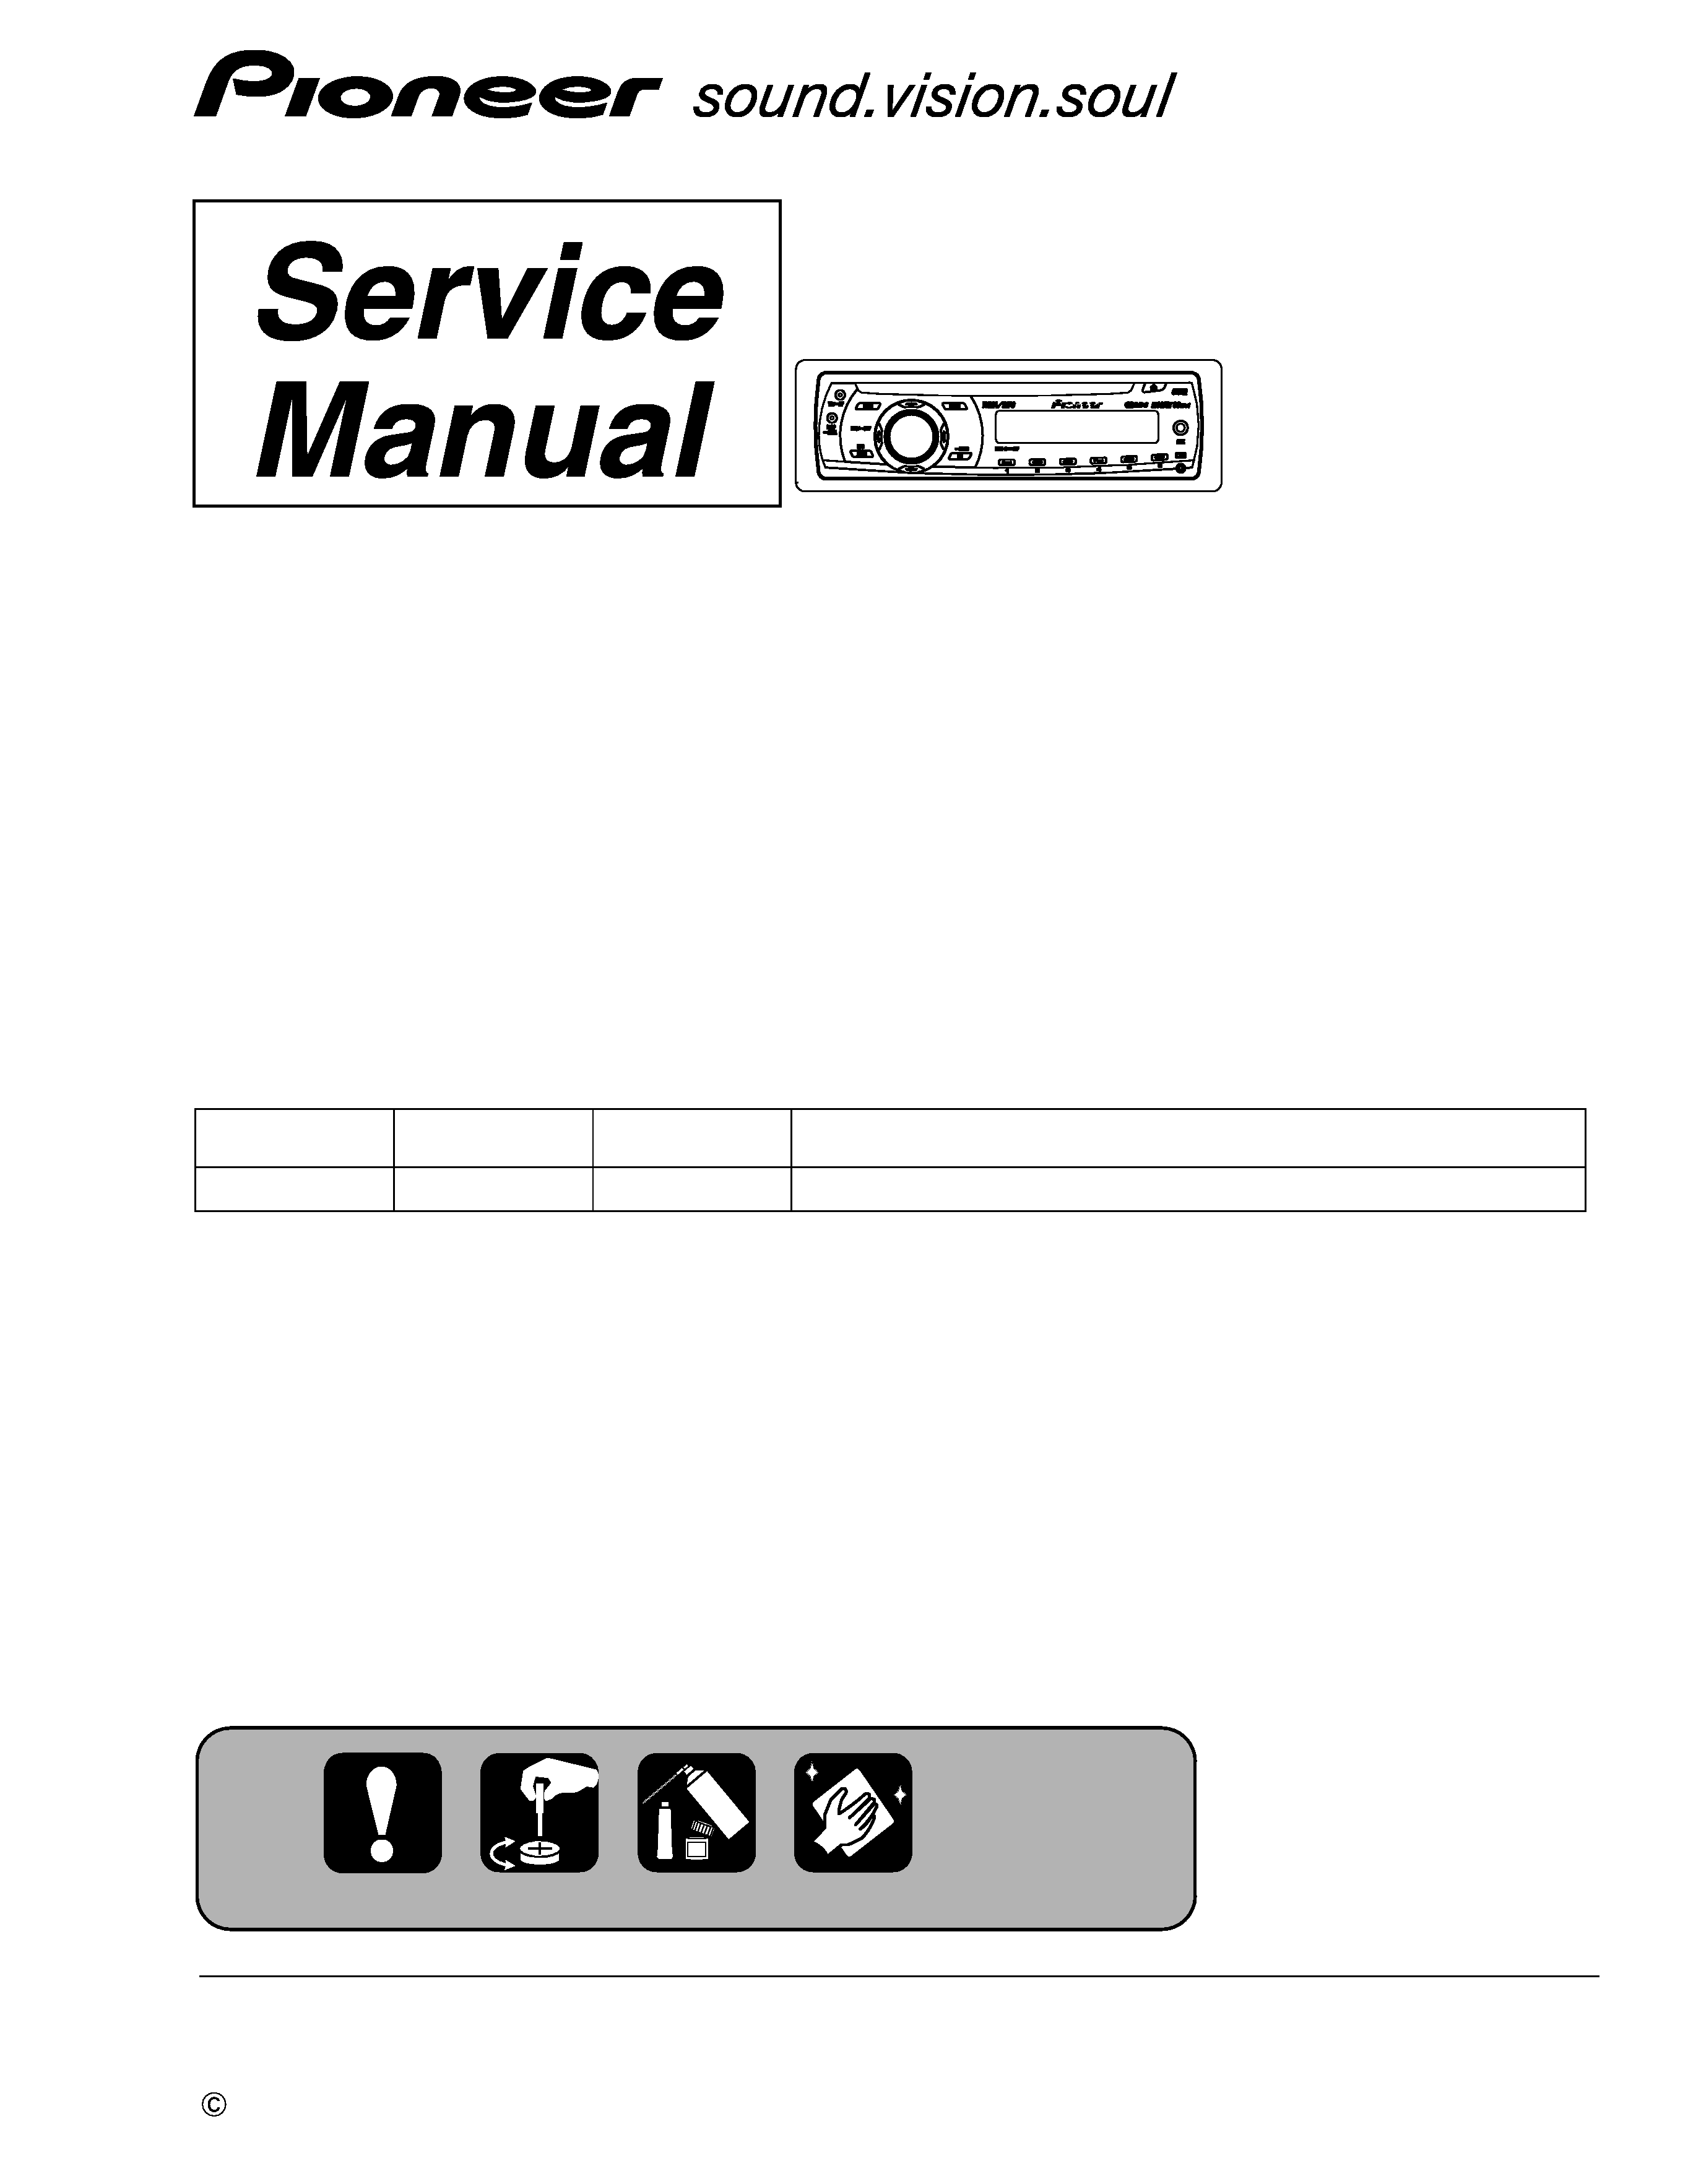 Service Manual For Pioneer Deh-2000mp  Xs  Uc